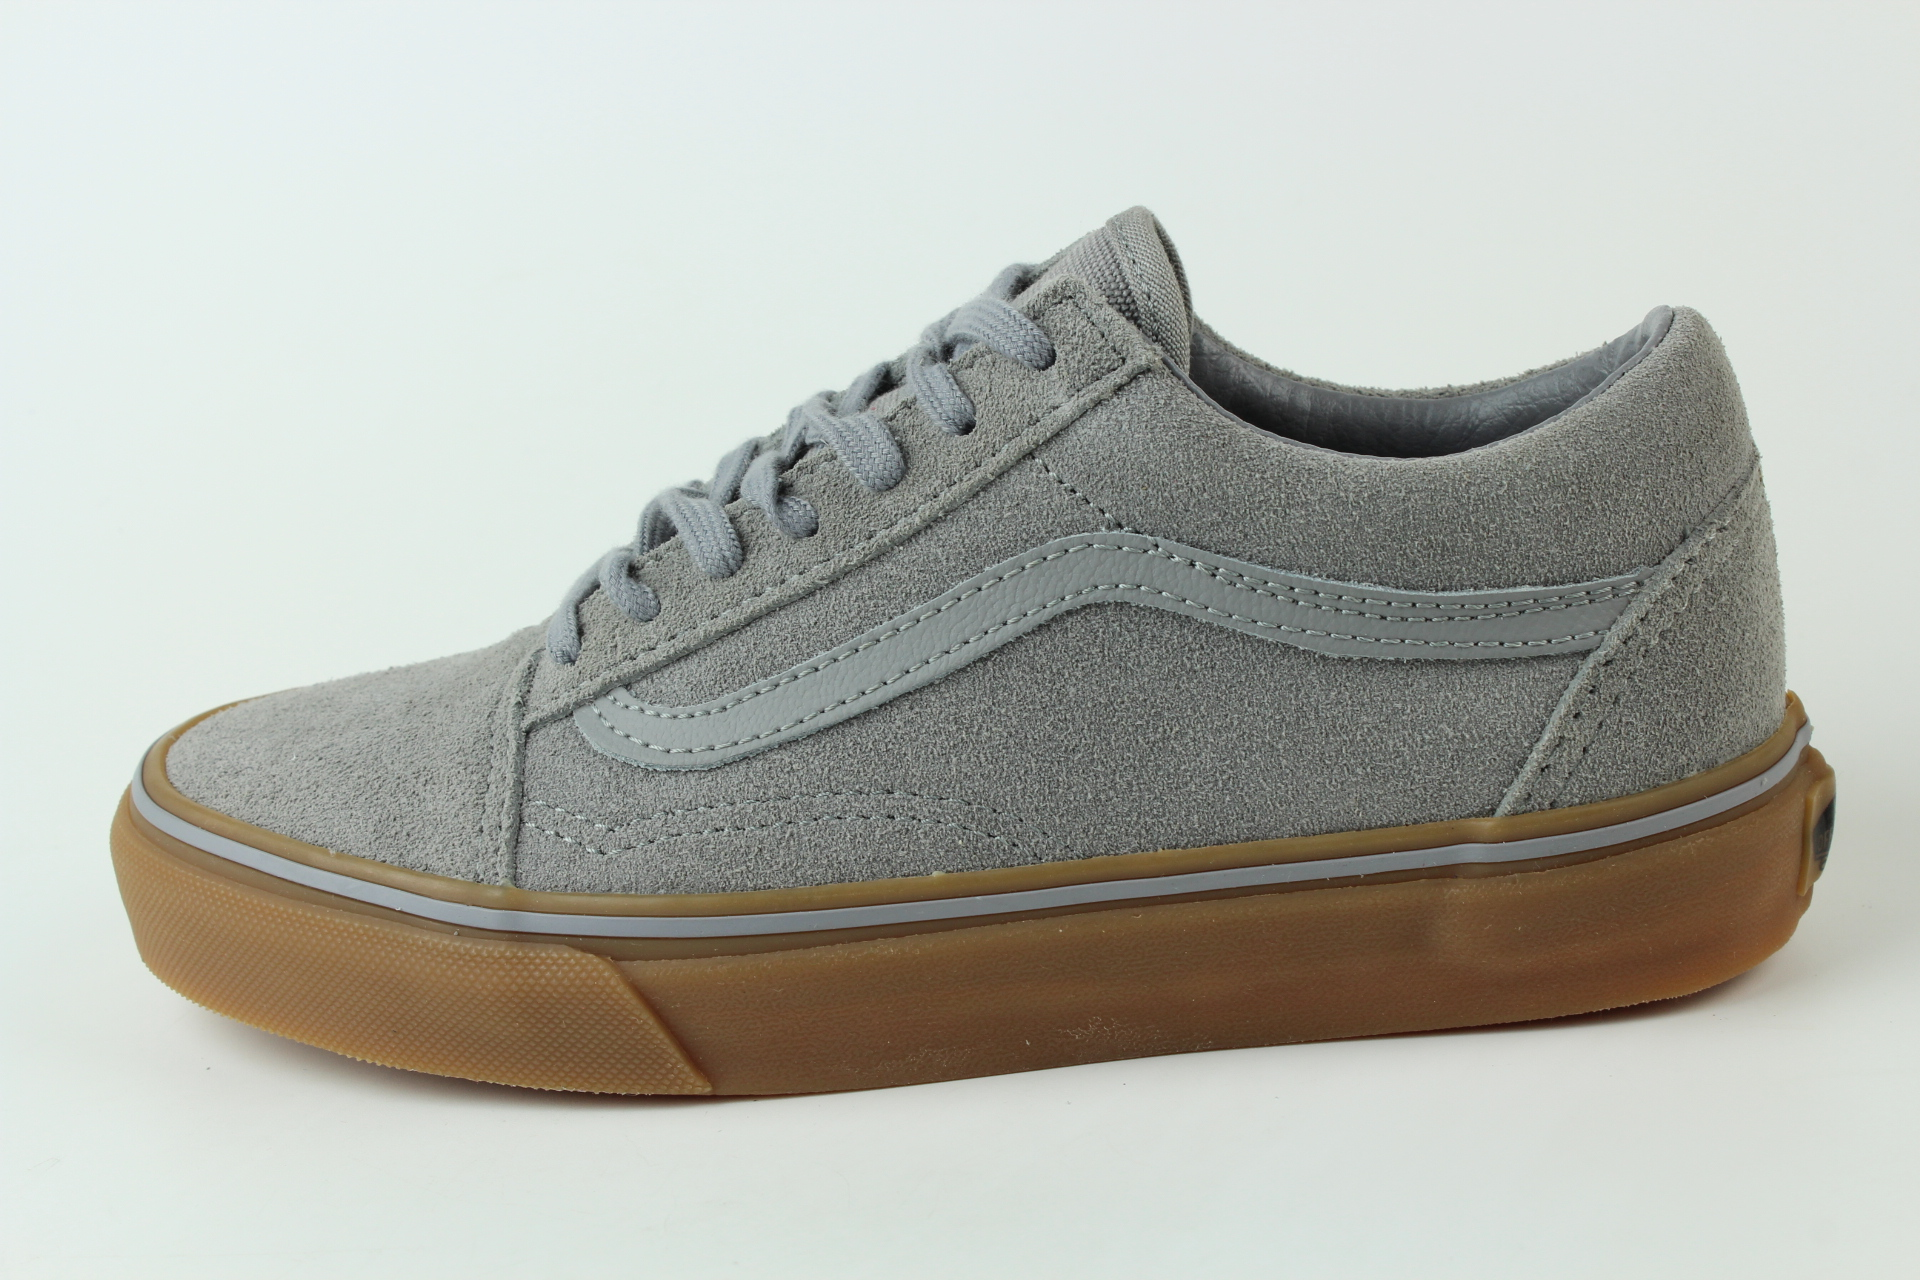 vans old skool gr 34 5 35 vvokdvt sneaker schuhe frost. Black Bedroom Furniture Sets. Home Design Ideas